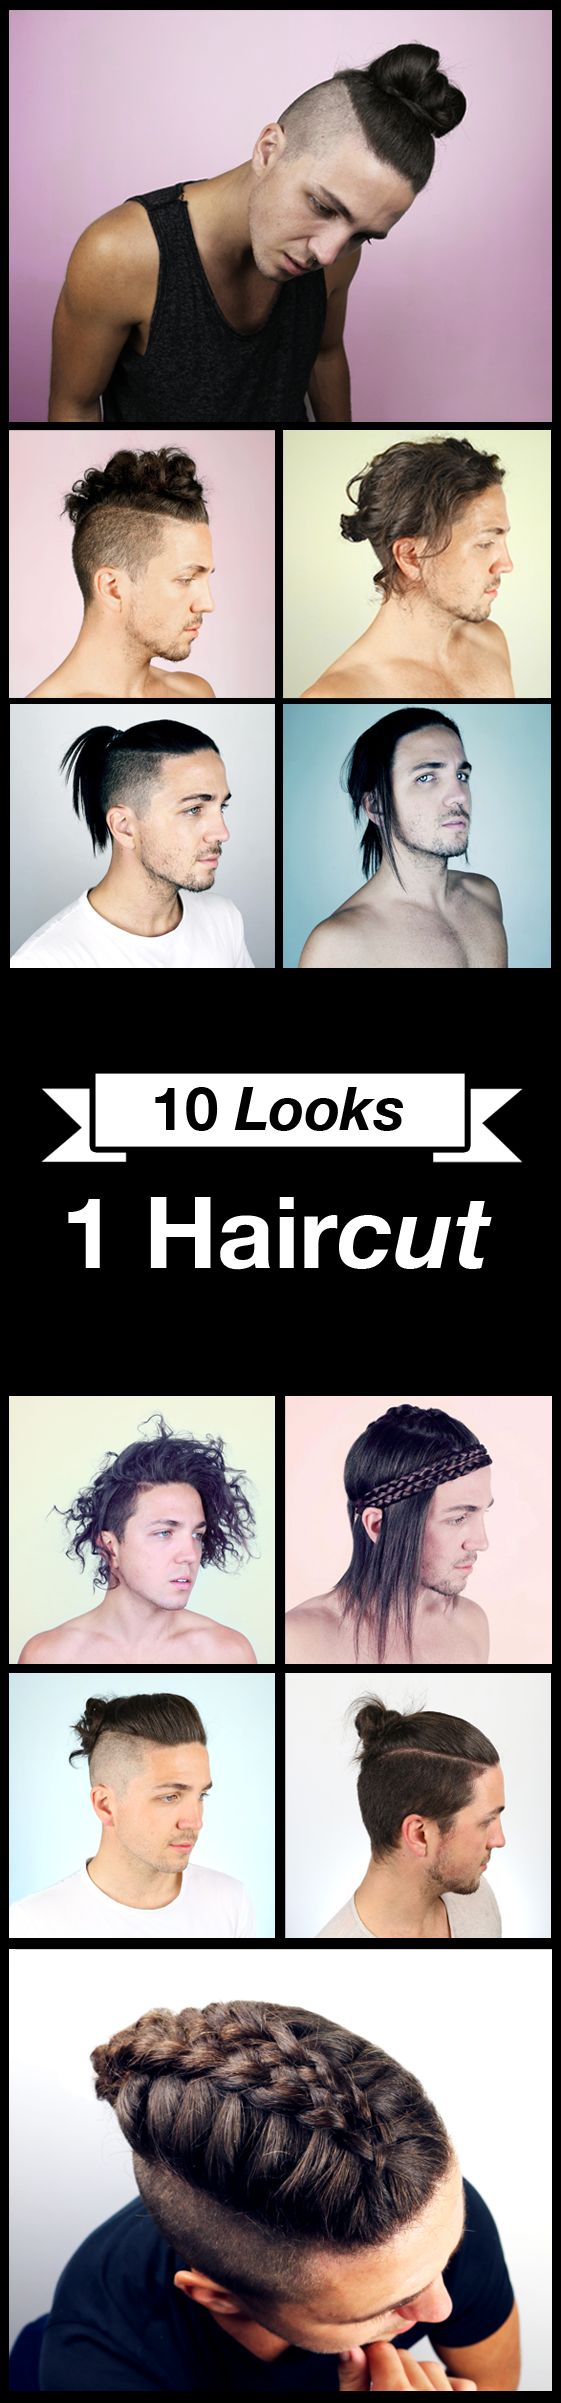 10 Hairstyles for men with a long undercut. All of these hairstyle work best with longer hair and especially on guys that wear the Top Knot or Man Bun.  For more ideas click here : https://www.youtube.com/watch?v=4ffe98V4sy0&t=28s